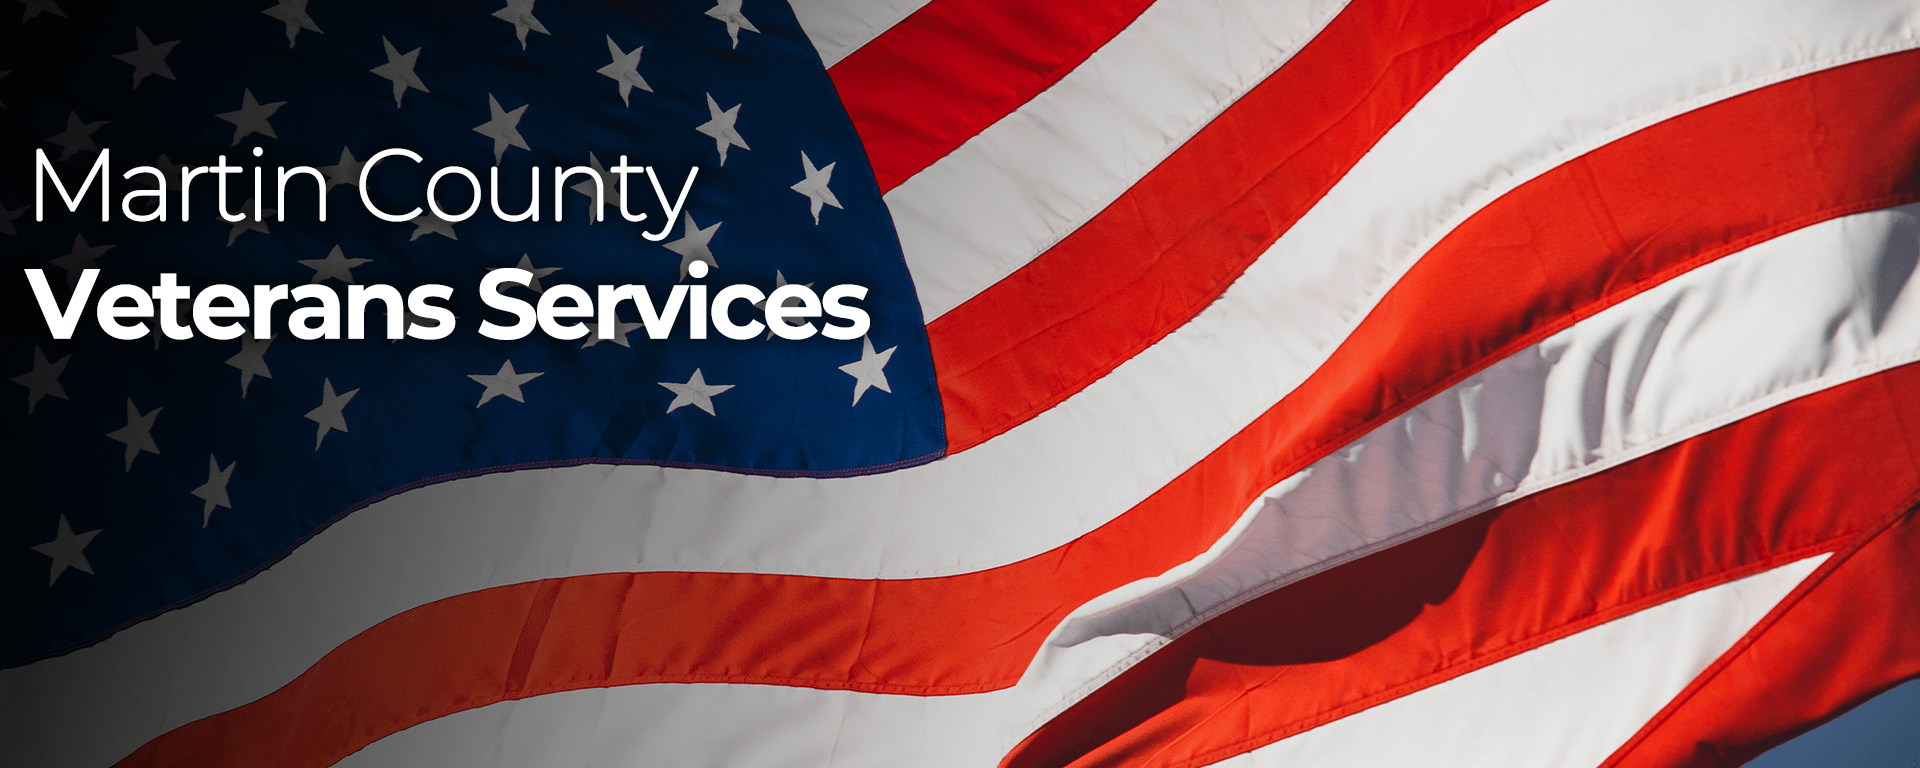 Martin County Veterans Services and American flag